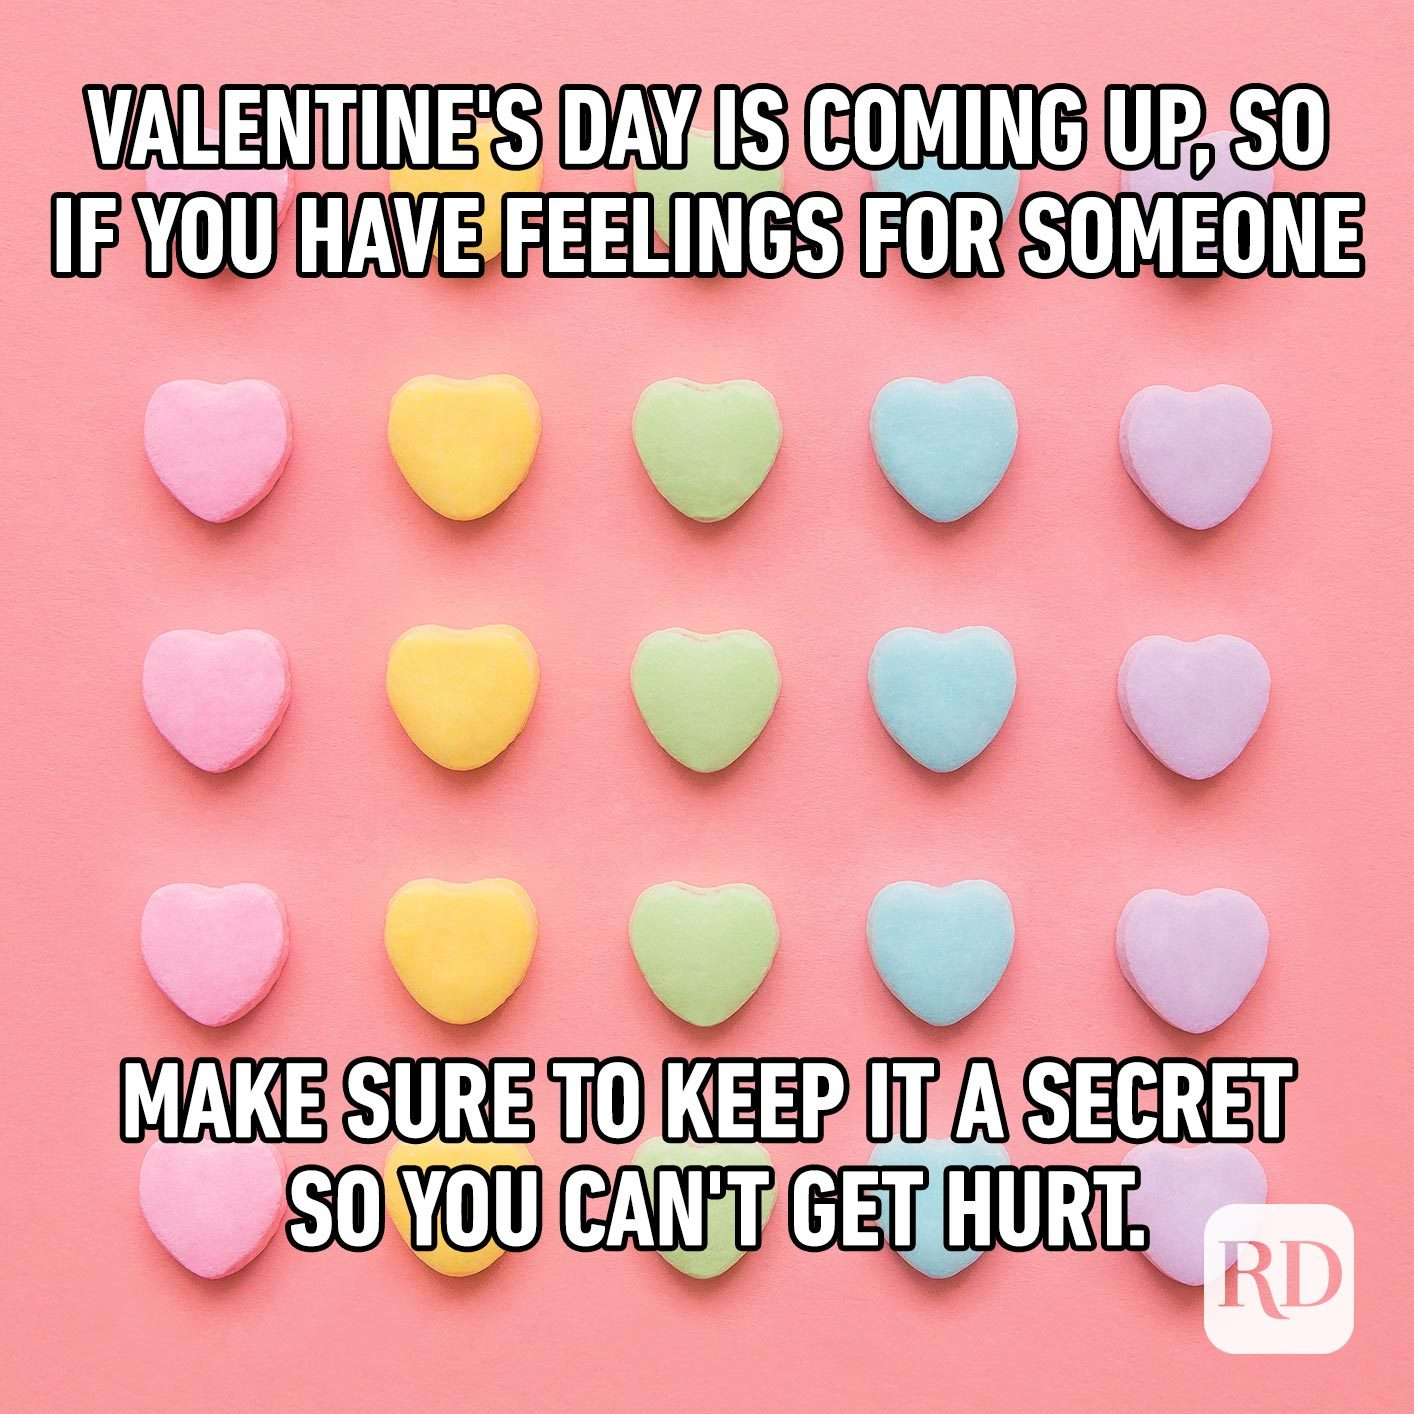 Candy hearts. Meme text: Valentine's Day is coming up, so if you have feelings for someone make sure to keep it a secret so you can't get hurt.